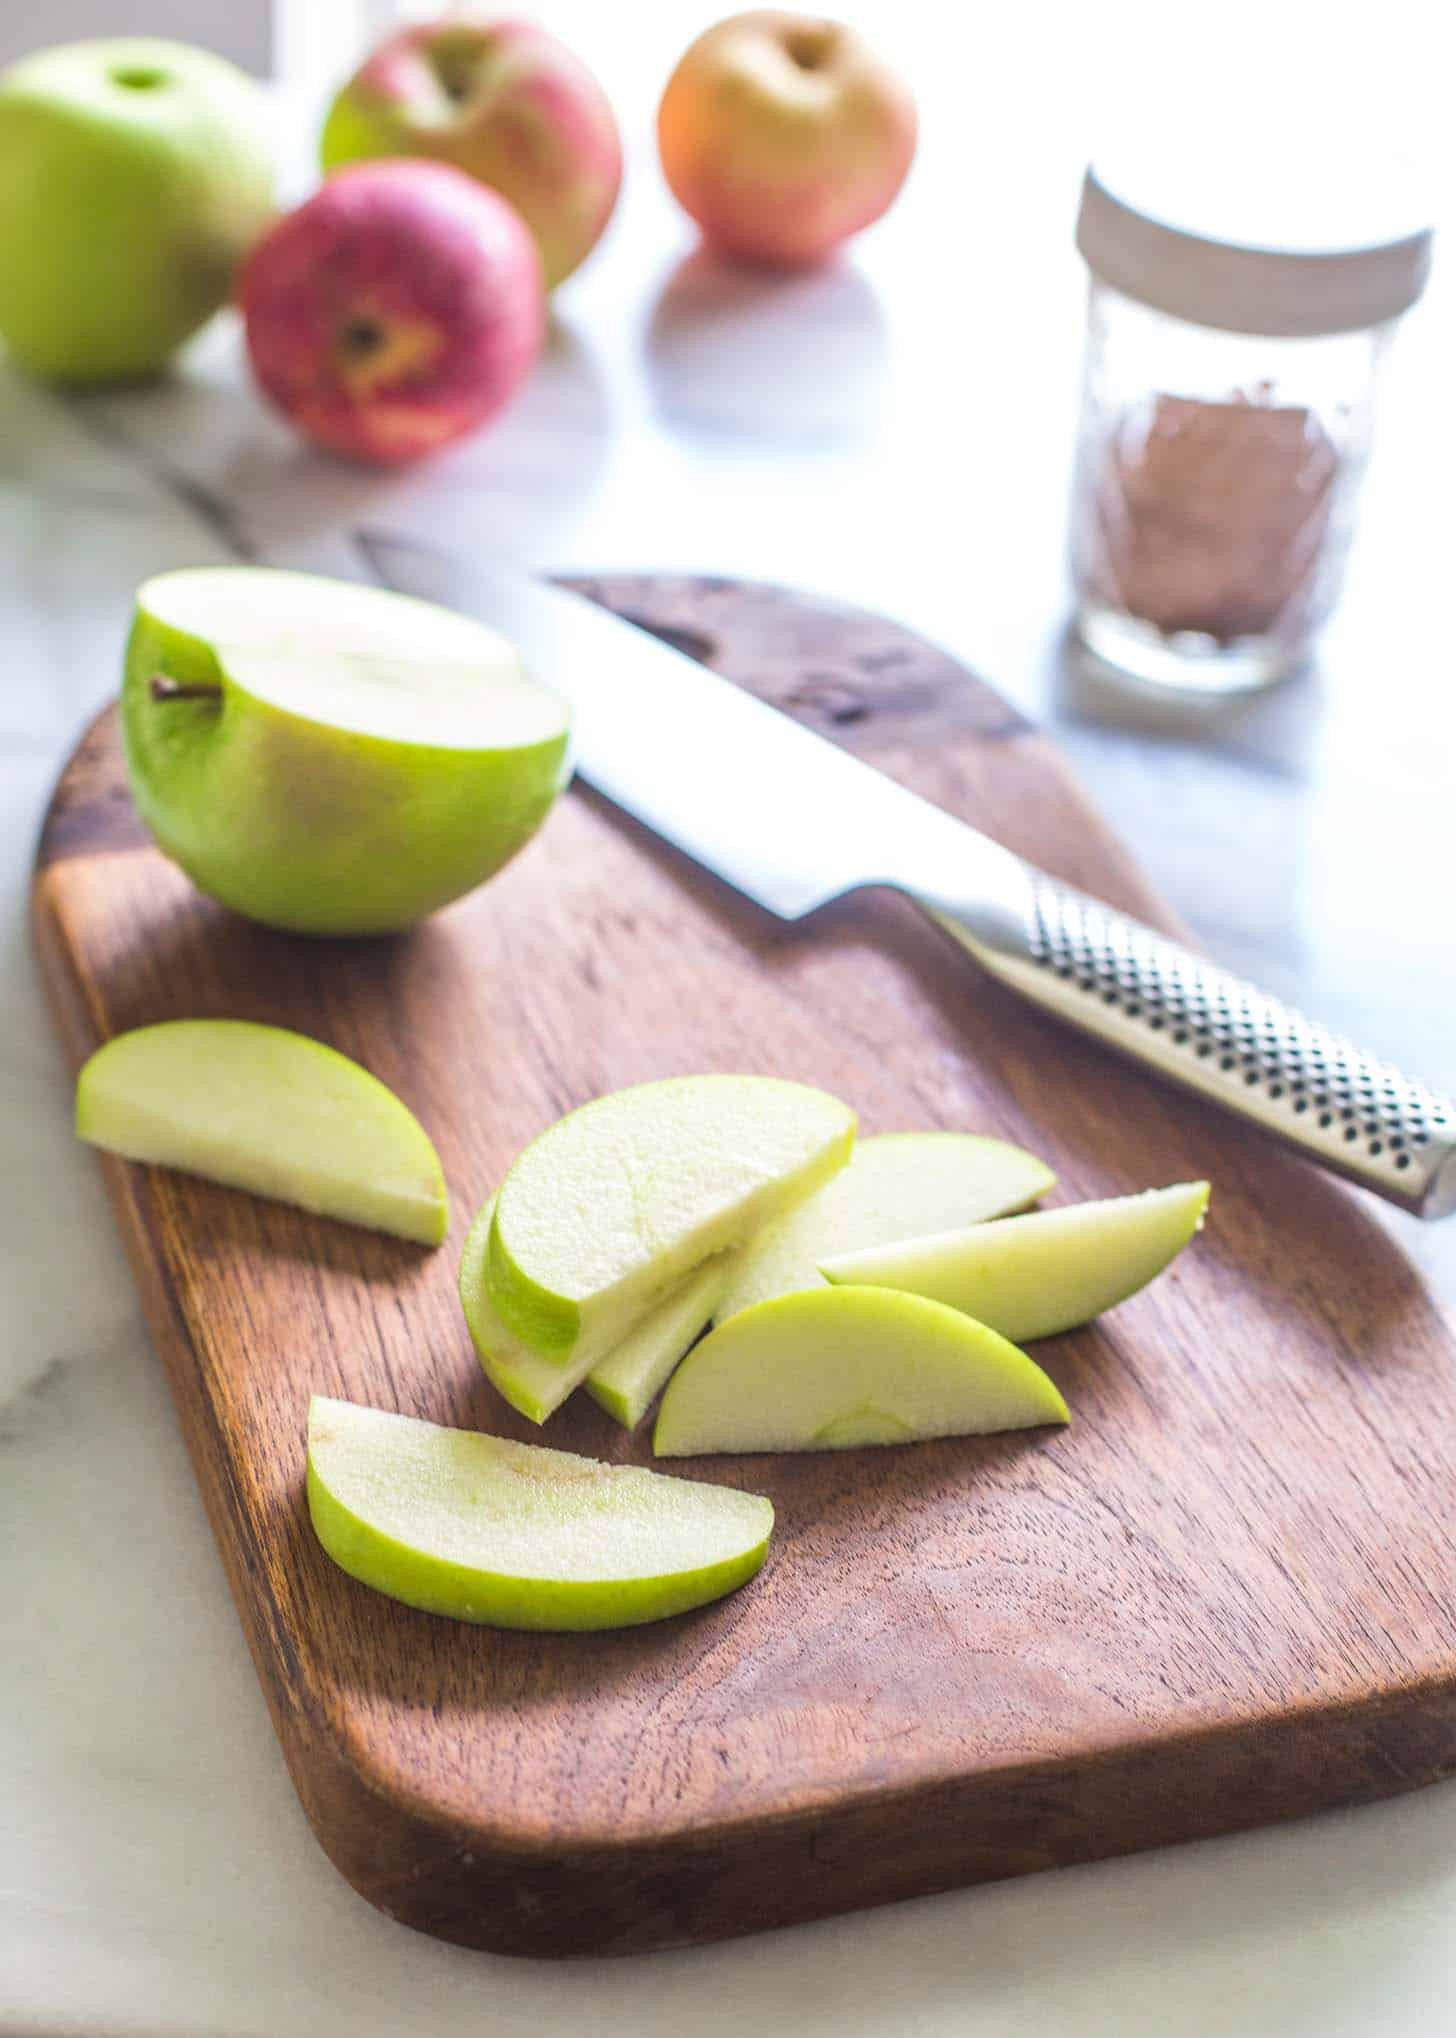 a sliced green apple on a wooden cutting board